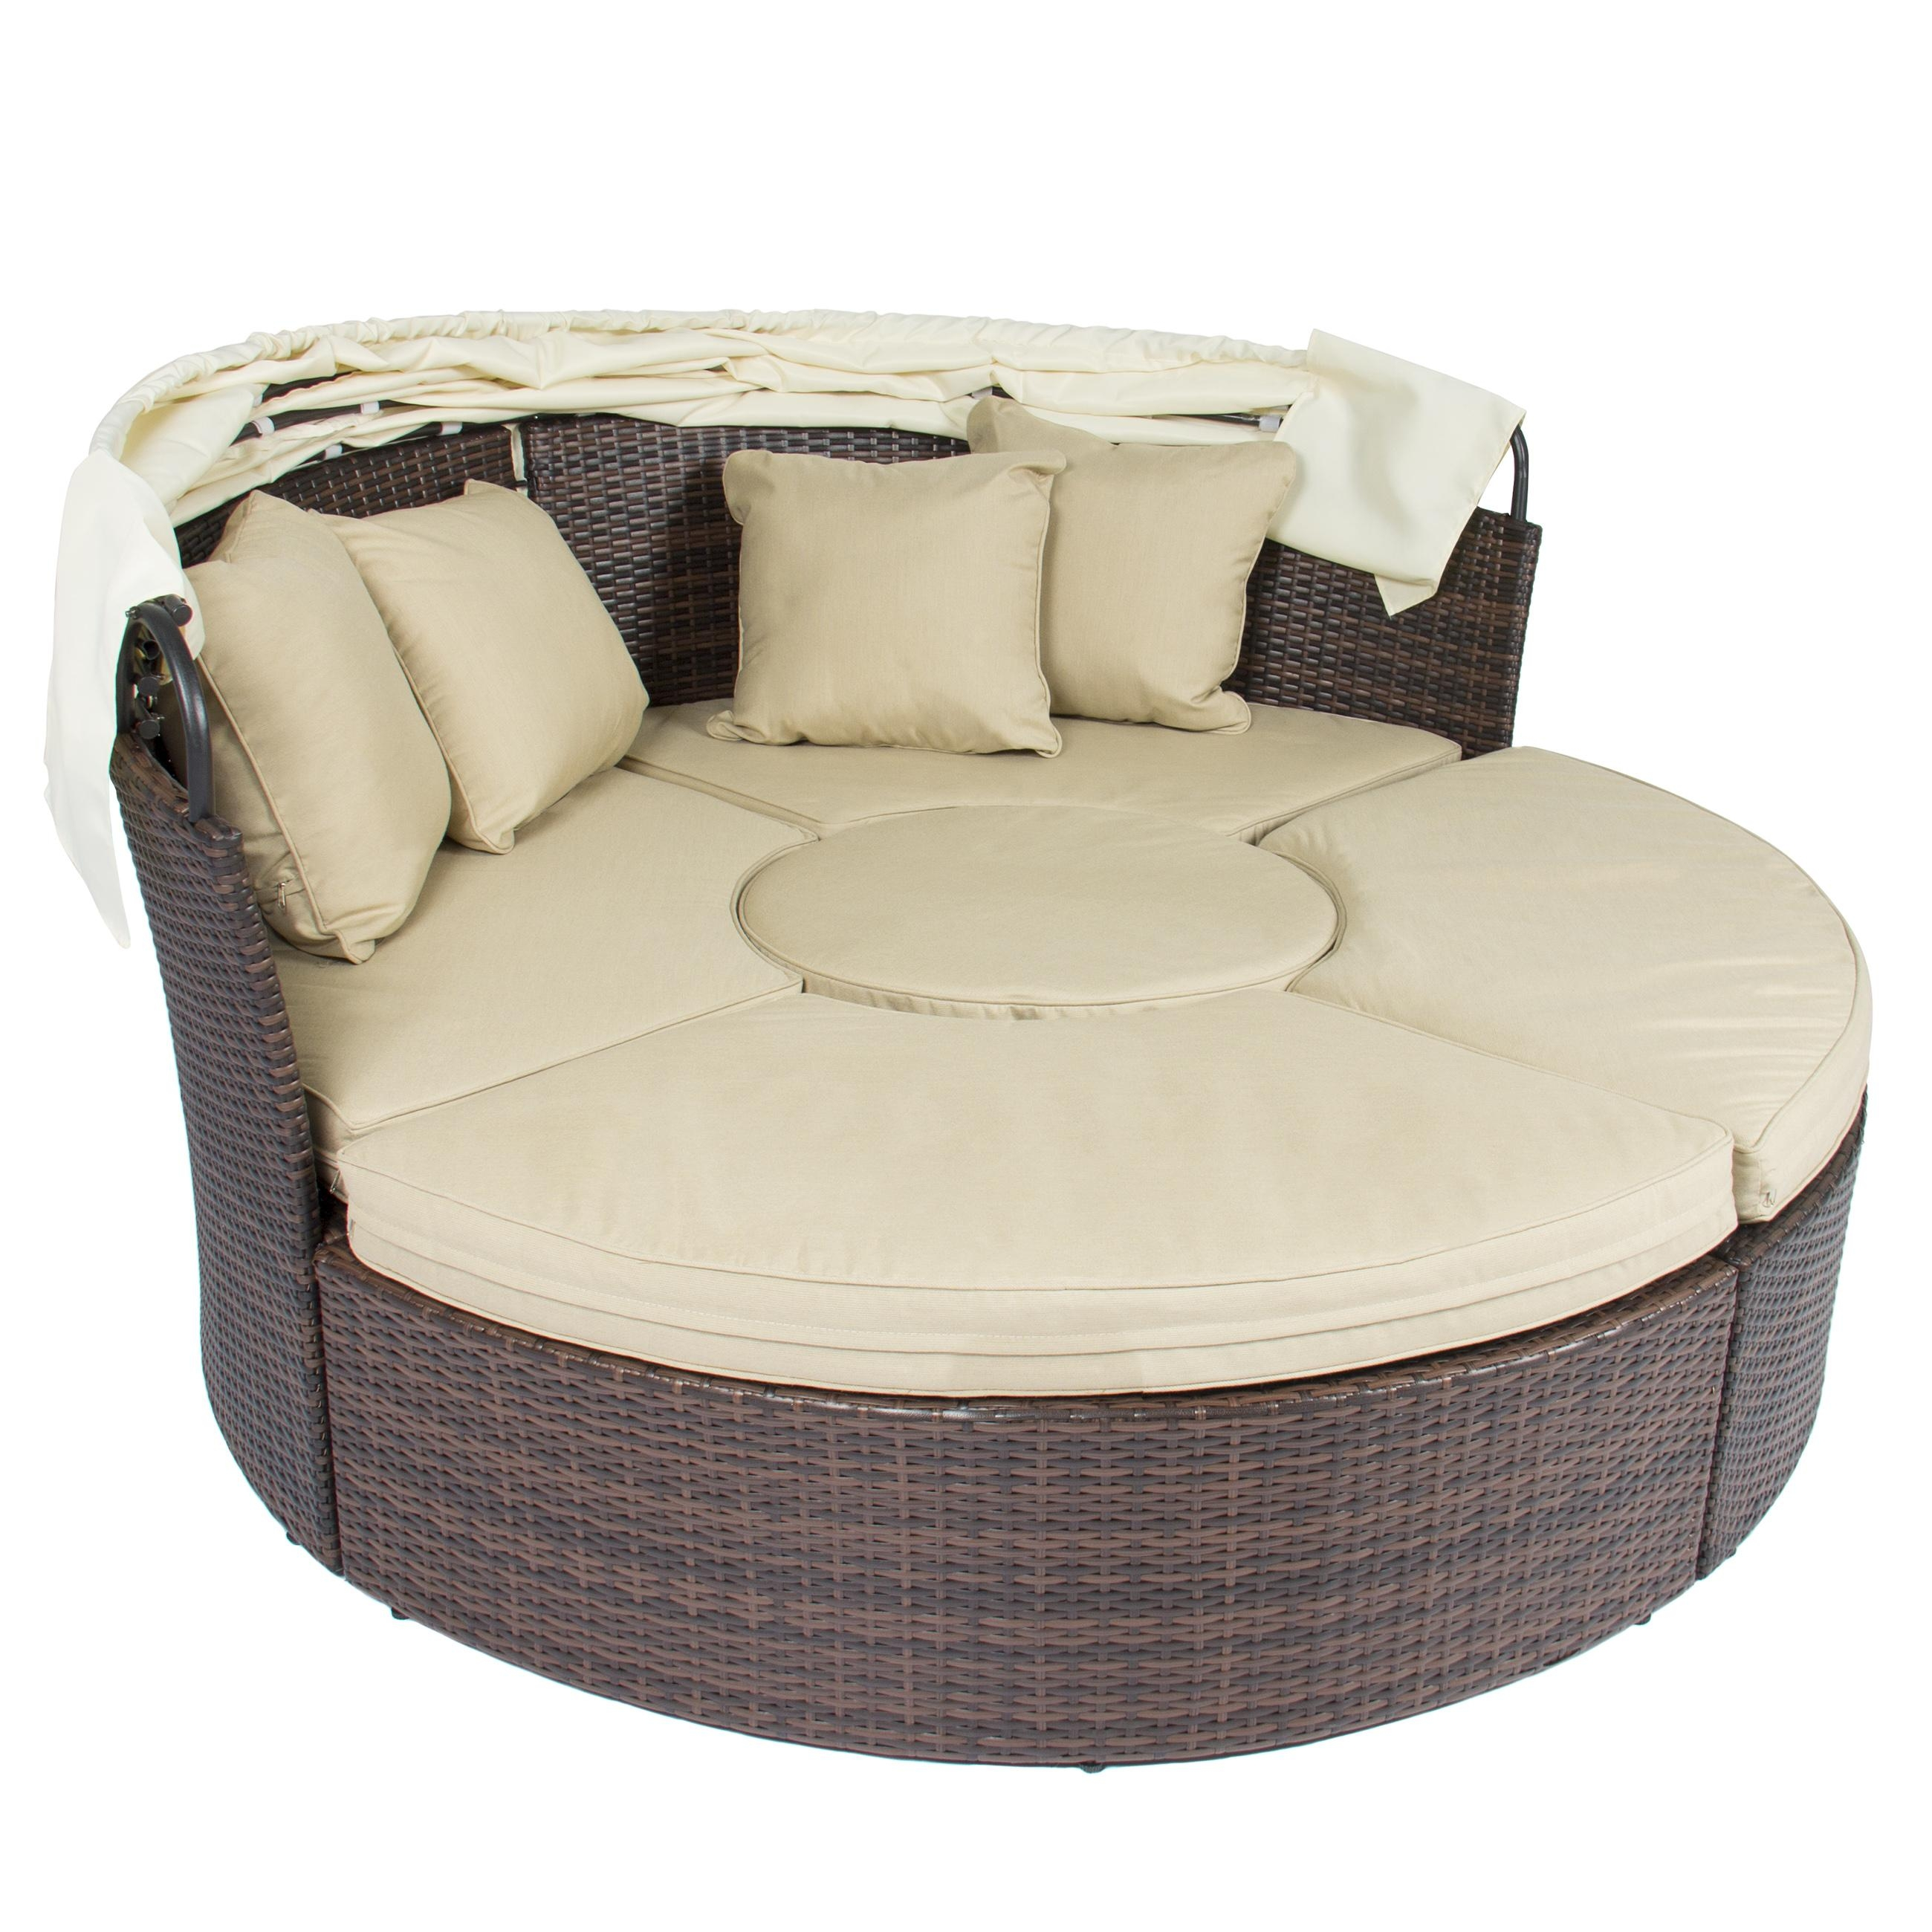 Sofas Center : Round Sofa Large Curved Sectional Astoria Throughout Round Sofas (Image 19 of 20)